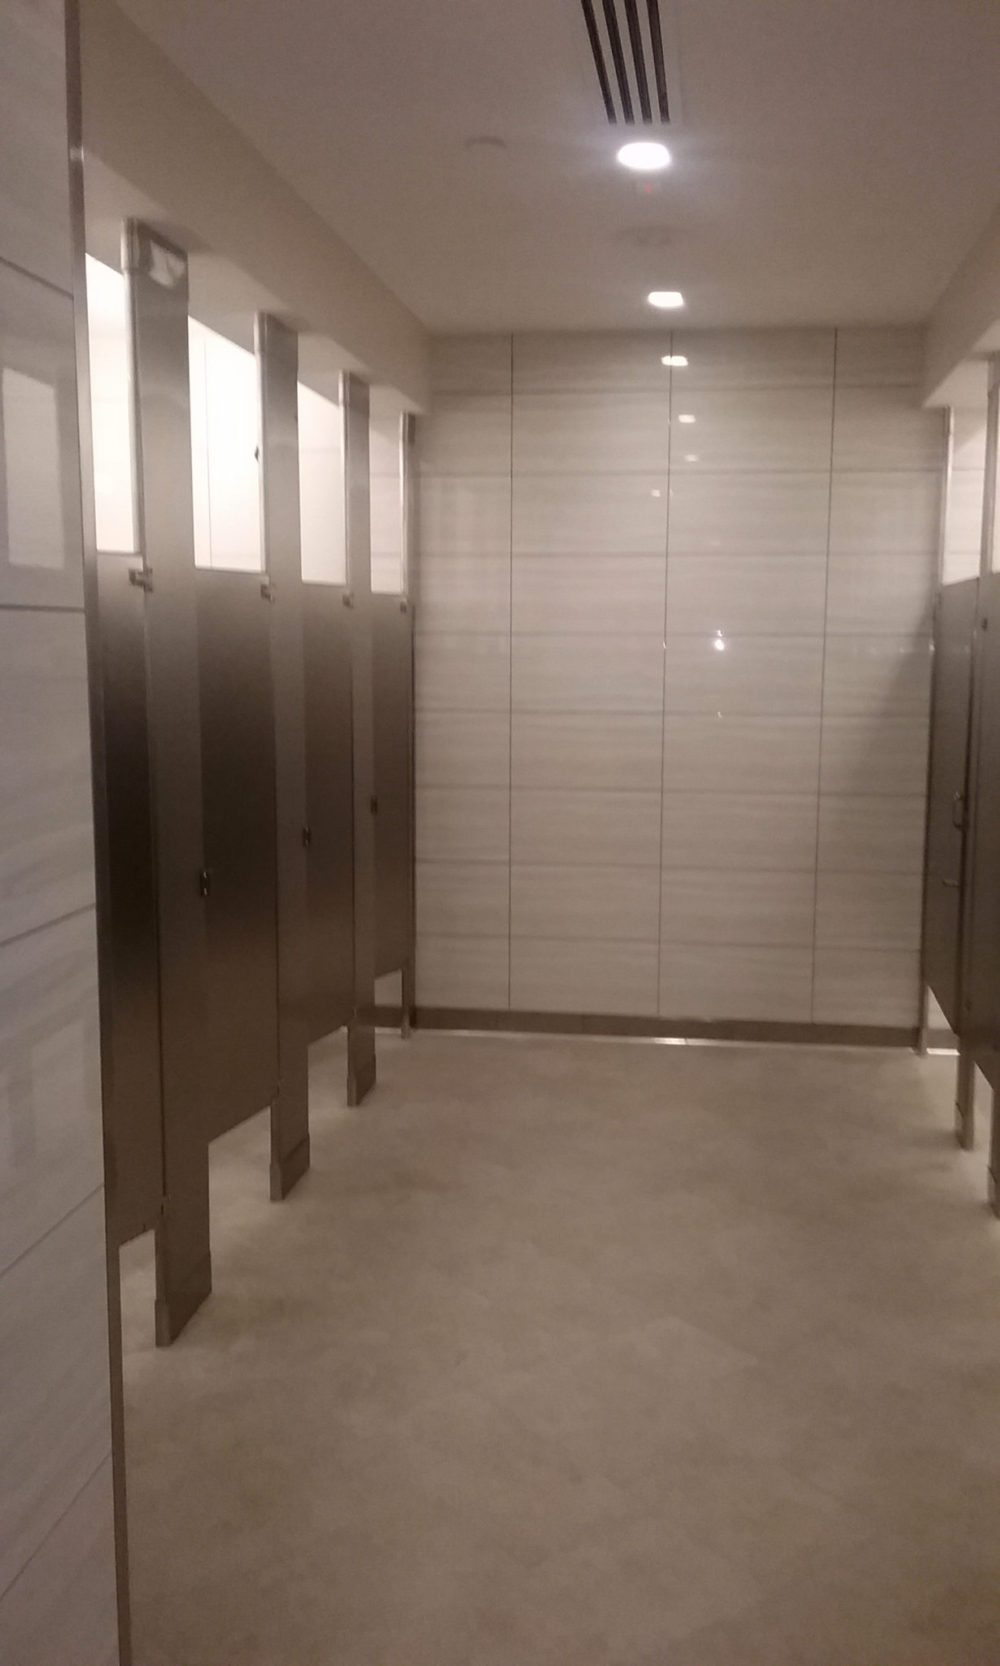 Restroom renovation by Advanced Retail Construction, Inc.